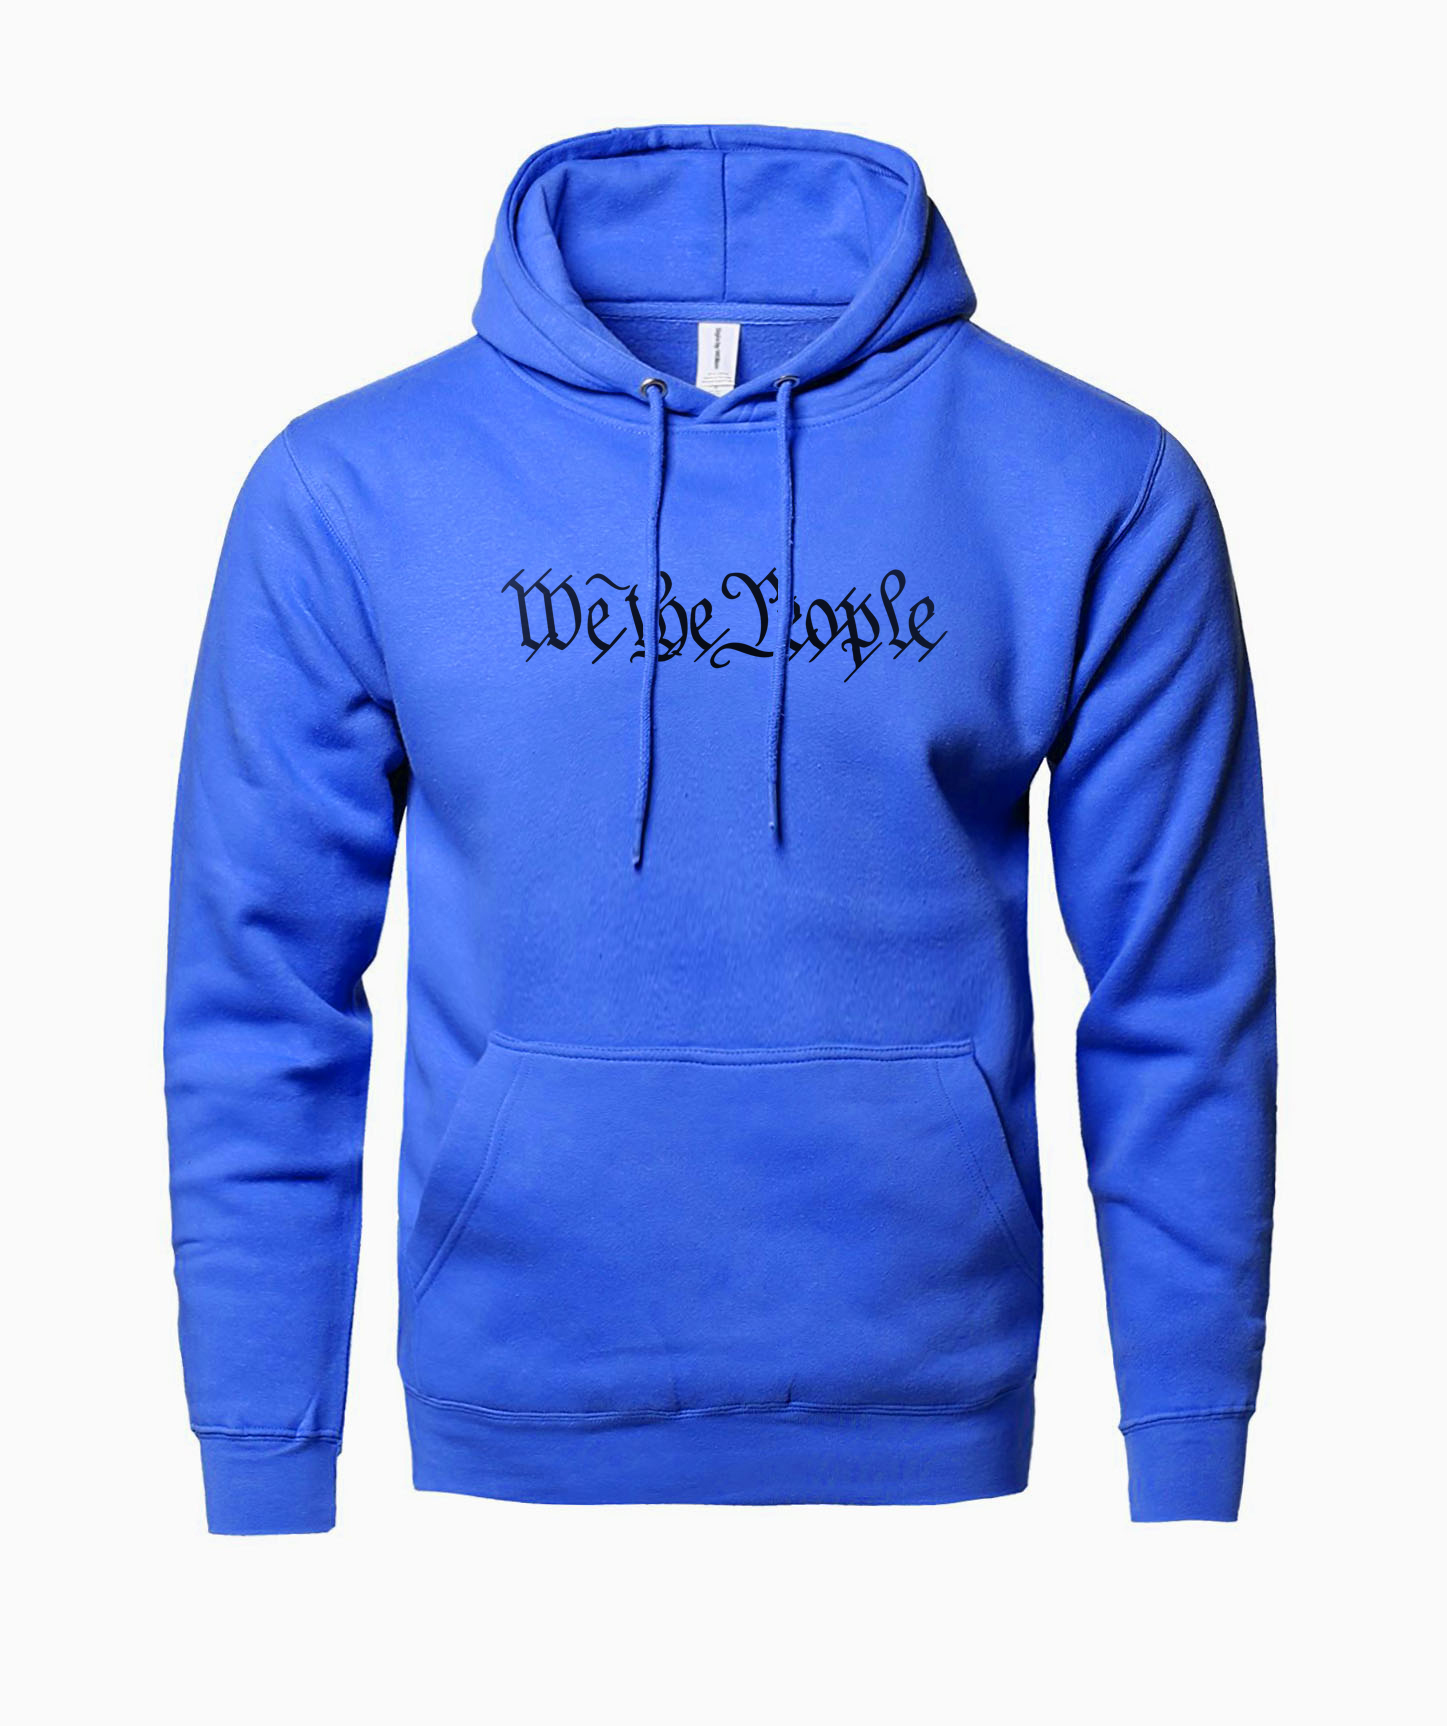 We The People Letters Print Fashion Brand Hoodies 2019 Spring Autumn Sweatshirts Hoodie Men Harajuku Hipster Men's Hoody Poncho